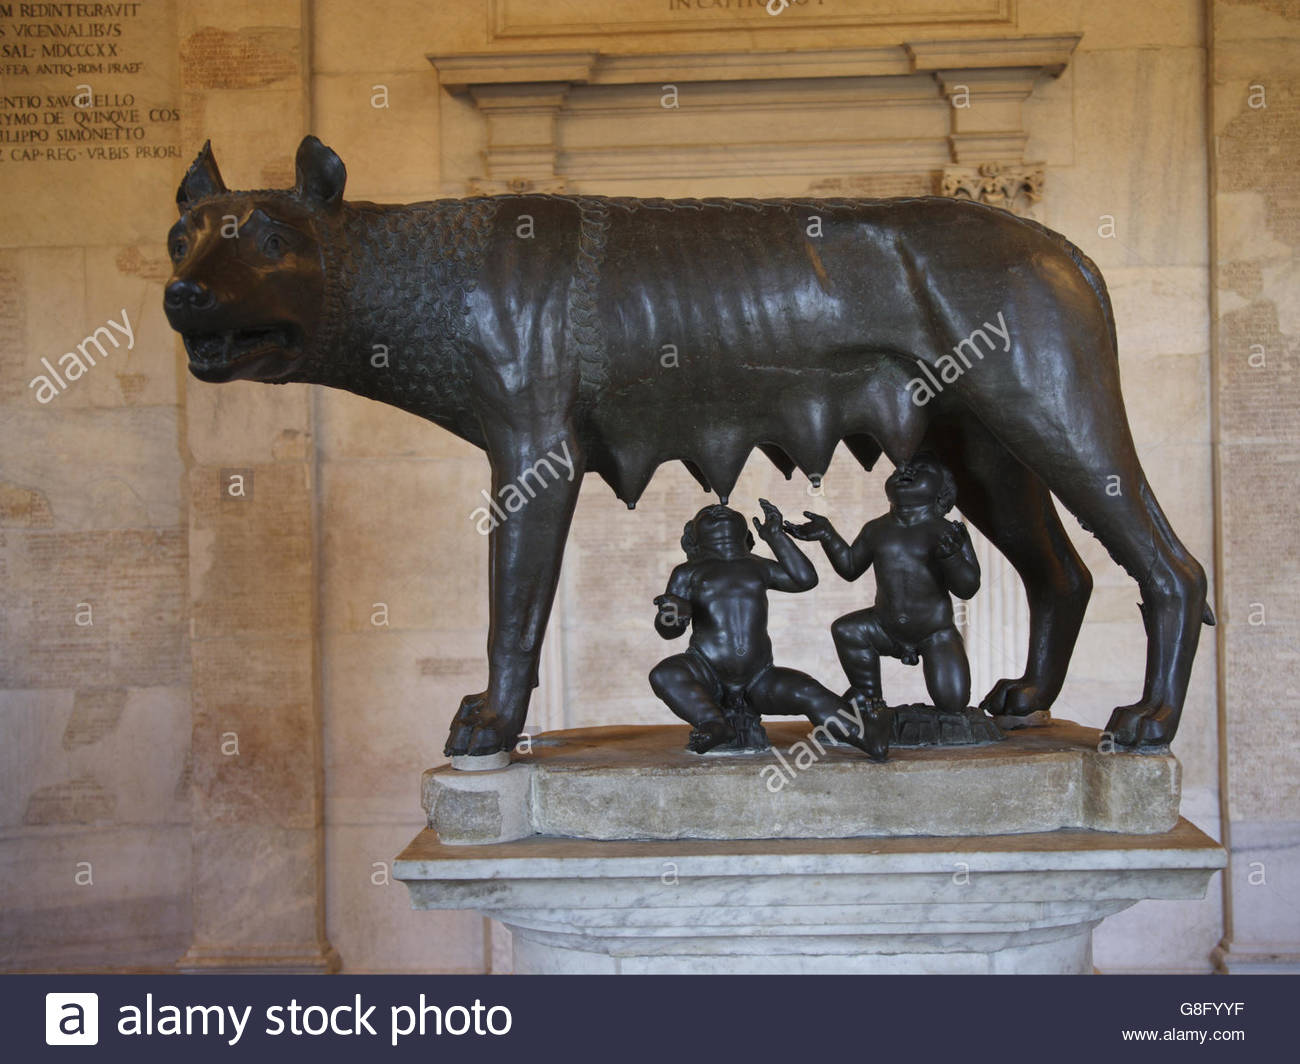 Bronze statue She-Wolf and infant twins Romulus and Remus, Capitoline Museum, Rome, Italy - Stock Image